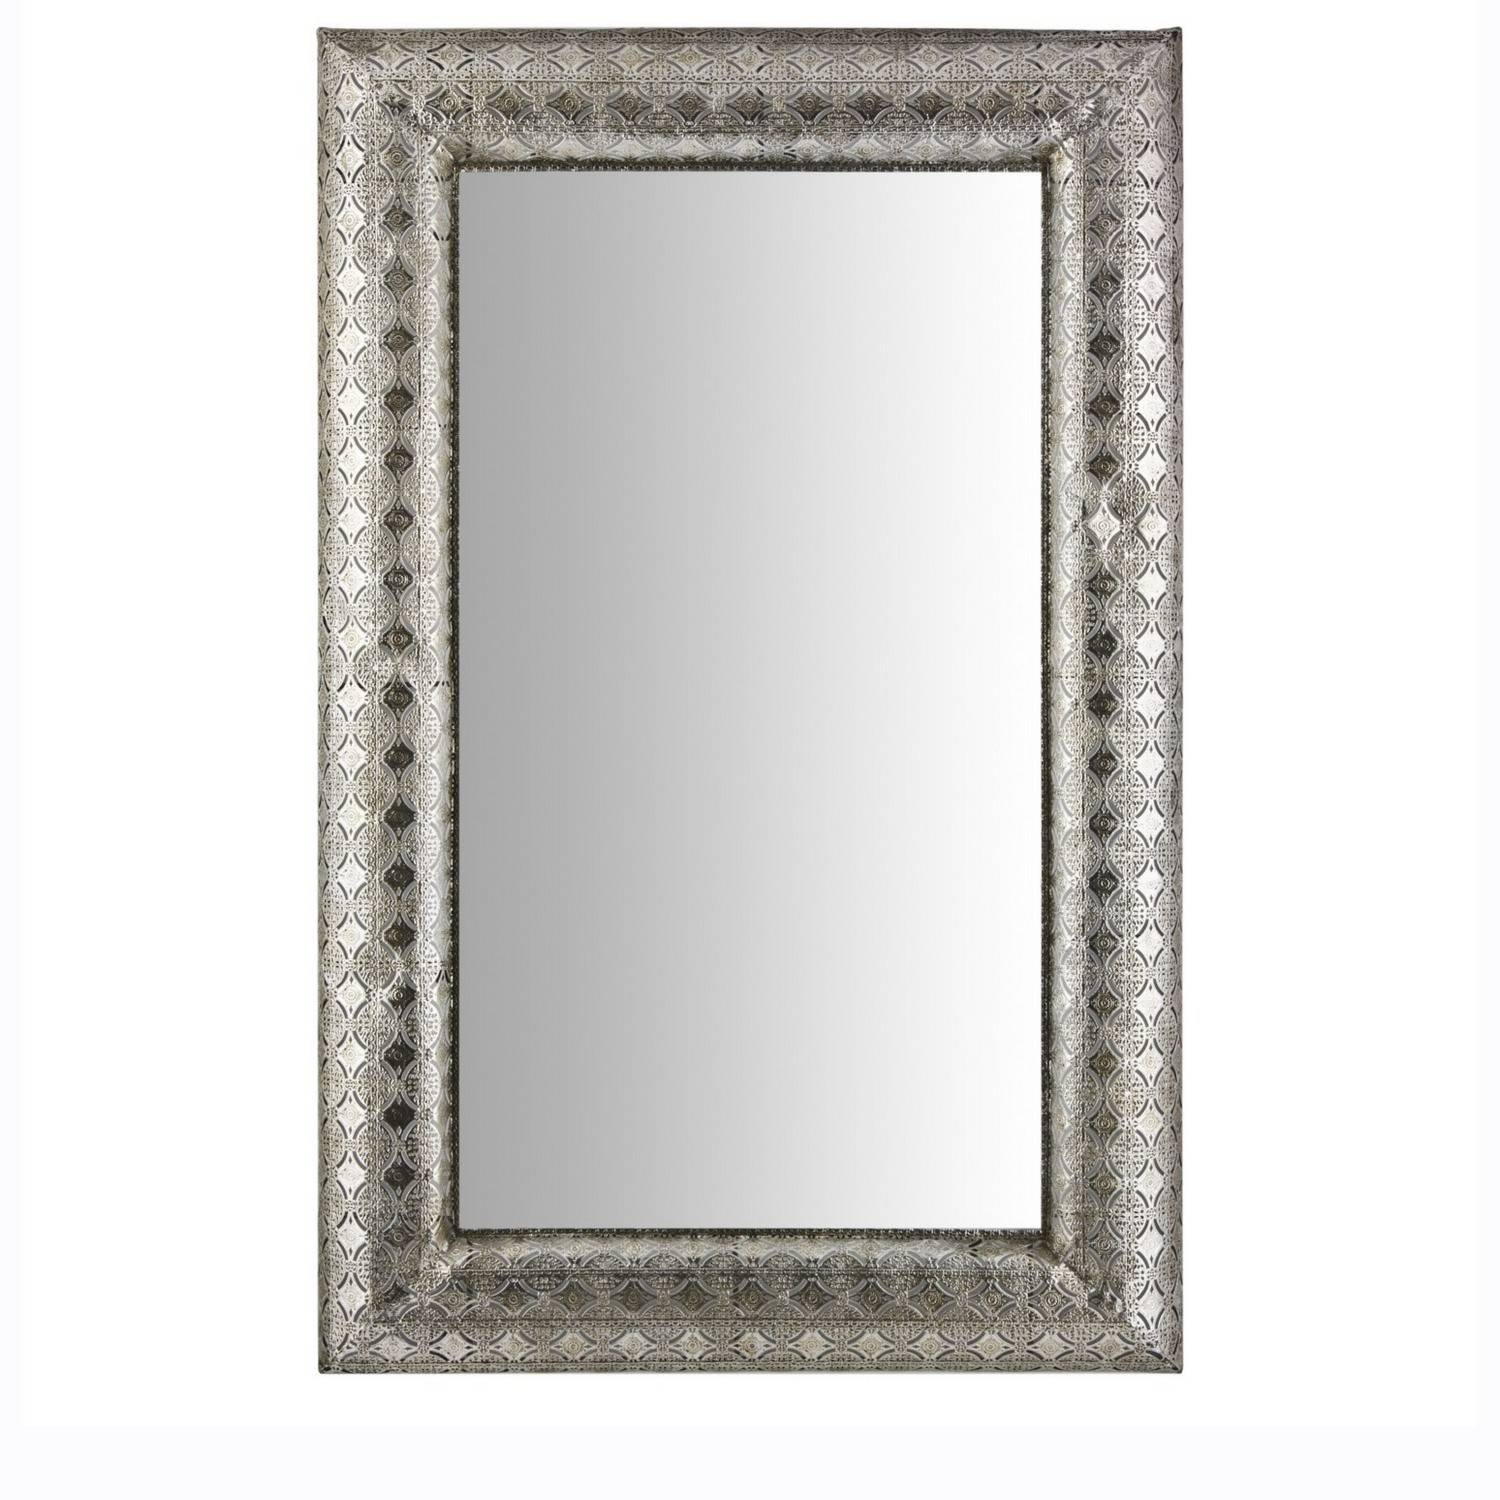 Wall Mounted & Hanging Mirrors | The Range In Rectangular Silver Mirrors (View 8 of 15)